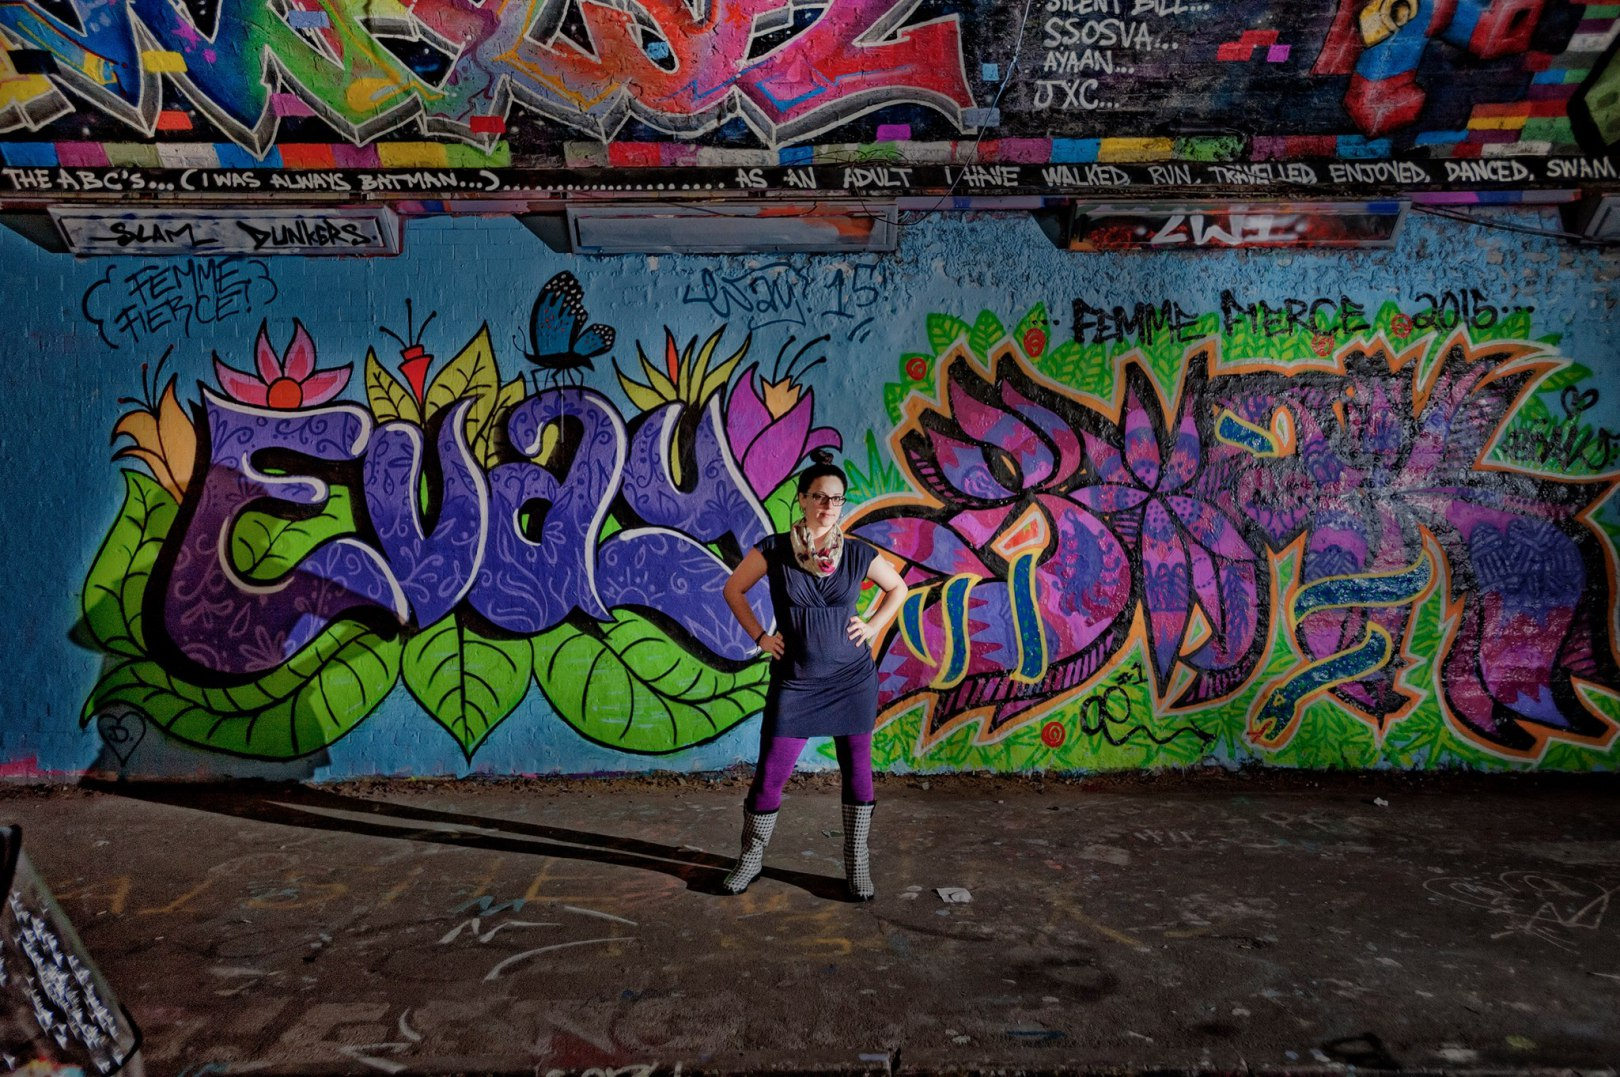 "Sk8er Grrlz - SUNY New Paltz professor Dr. Jessica Pabón-Colón has devoted her academic career to investigating the niche world of lesbian graffiti artists. ""I was just trying to look for the people that people forgot to look for,"" says Pabón-Colón about her so called ""Graffiti Grrlz"", a nod to the Riot Grrrl movement of the 90s. In her first book, Graffiti Grrlz: Performing Feminism in the Hip Hop Diaspora, a culmination of 15 years of research, Pabón-Colón addresses ideas of sexuality, feminism, and politics through the lens of the international graffiti community. Graffiti Grrlz: Performing Feminism in the Hip Hop Diaspora can be found through book stores beginning May 1."